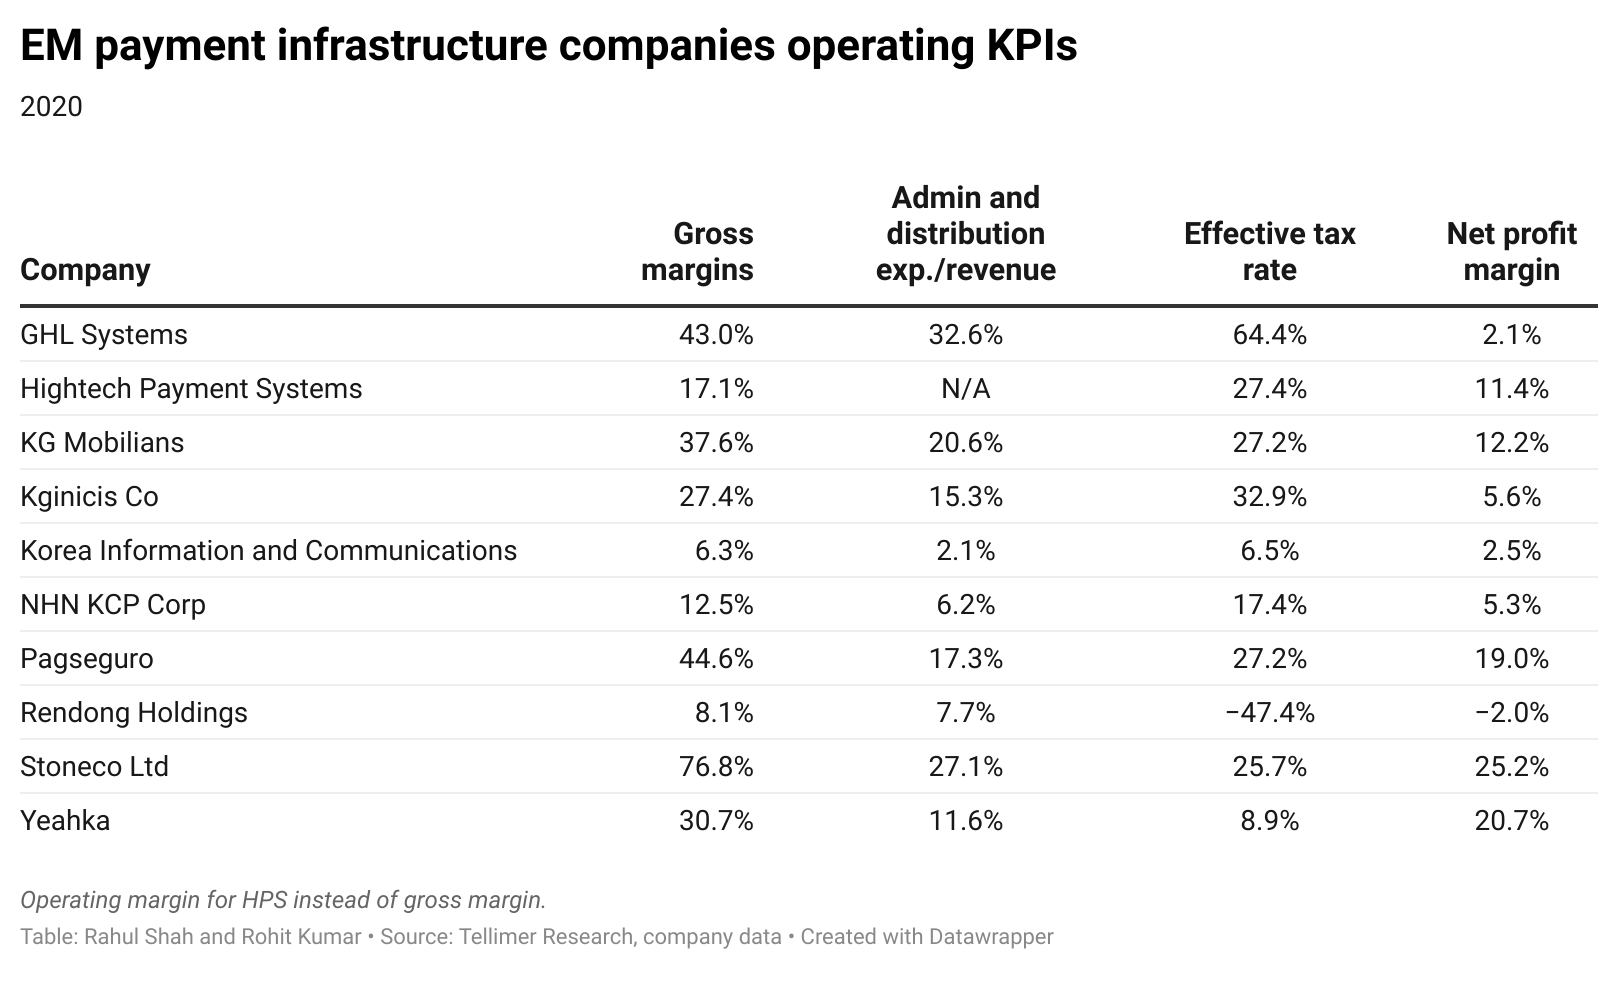 EM payment infrastructure companies operating KPIs